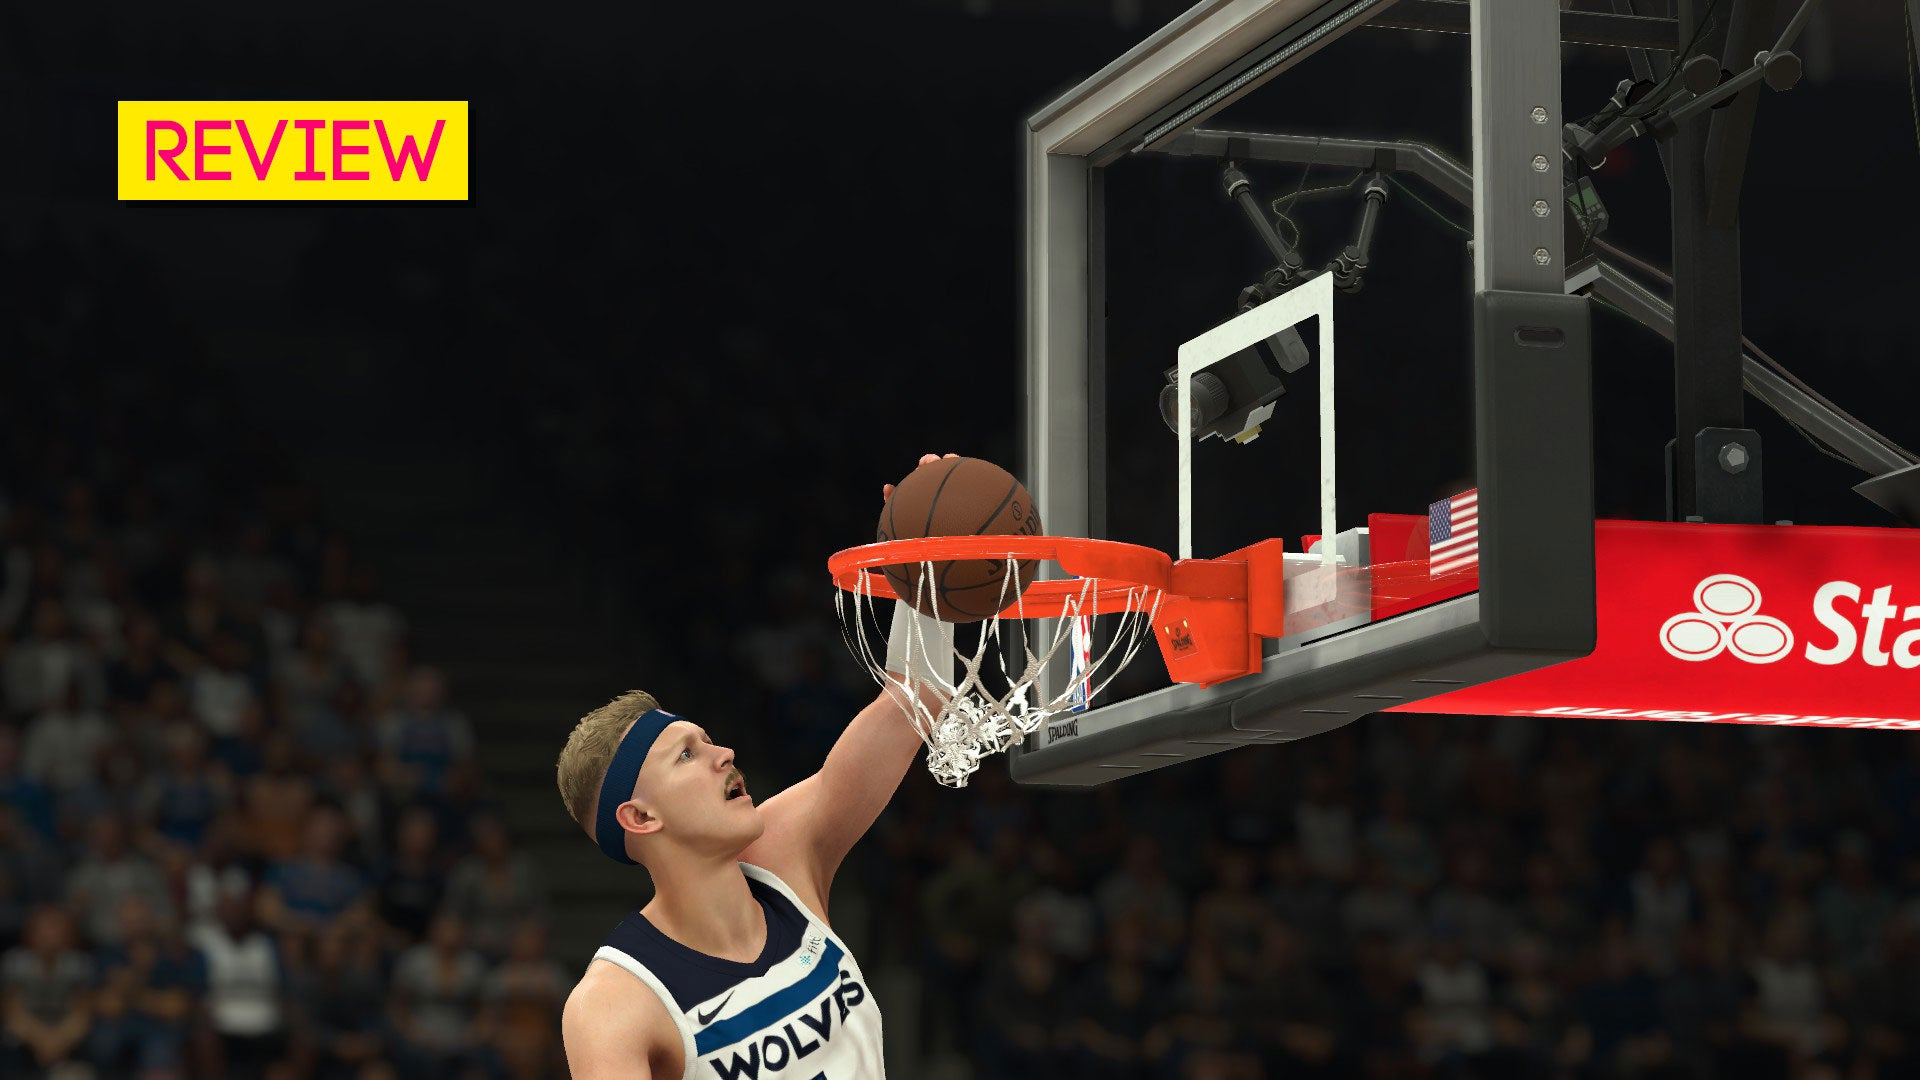 jordan shoes nba 2k18 review metacritic pc strategy 777246